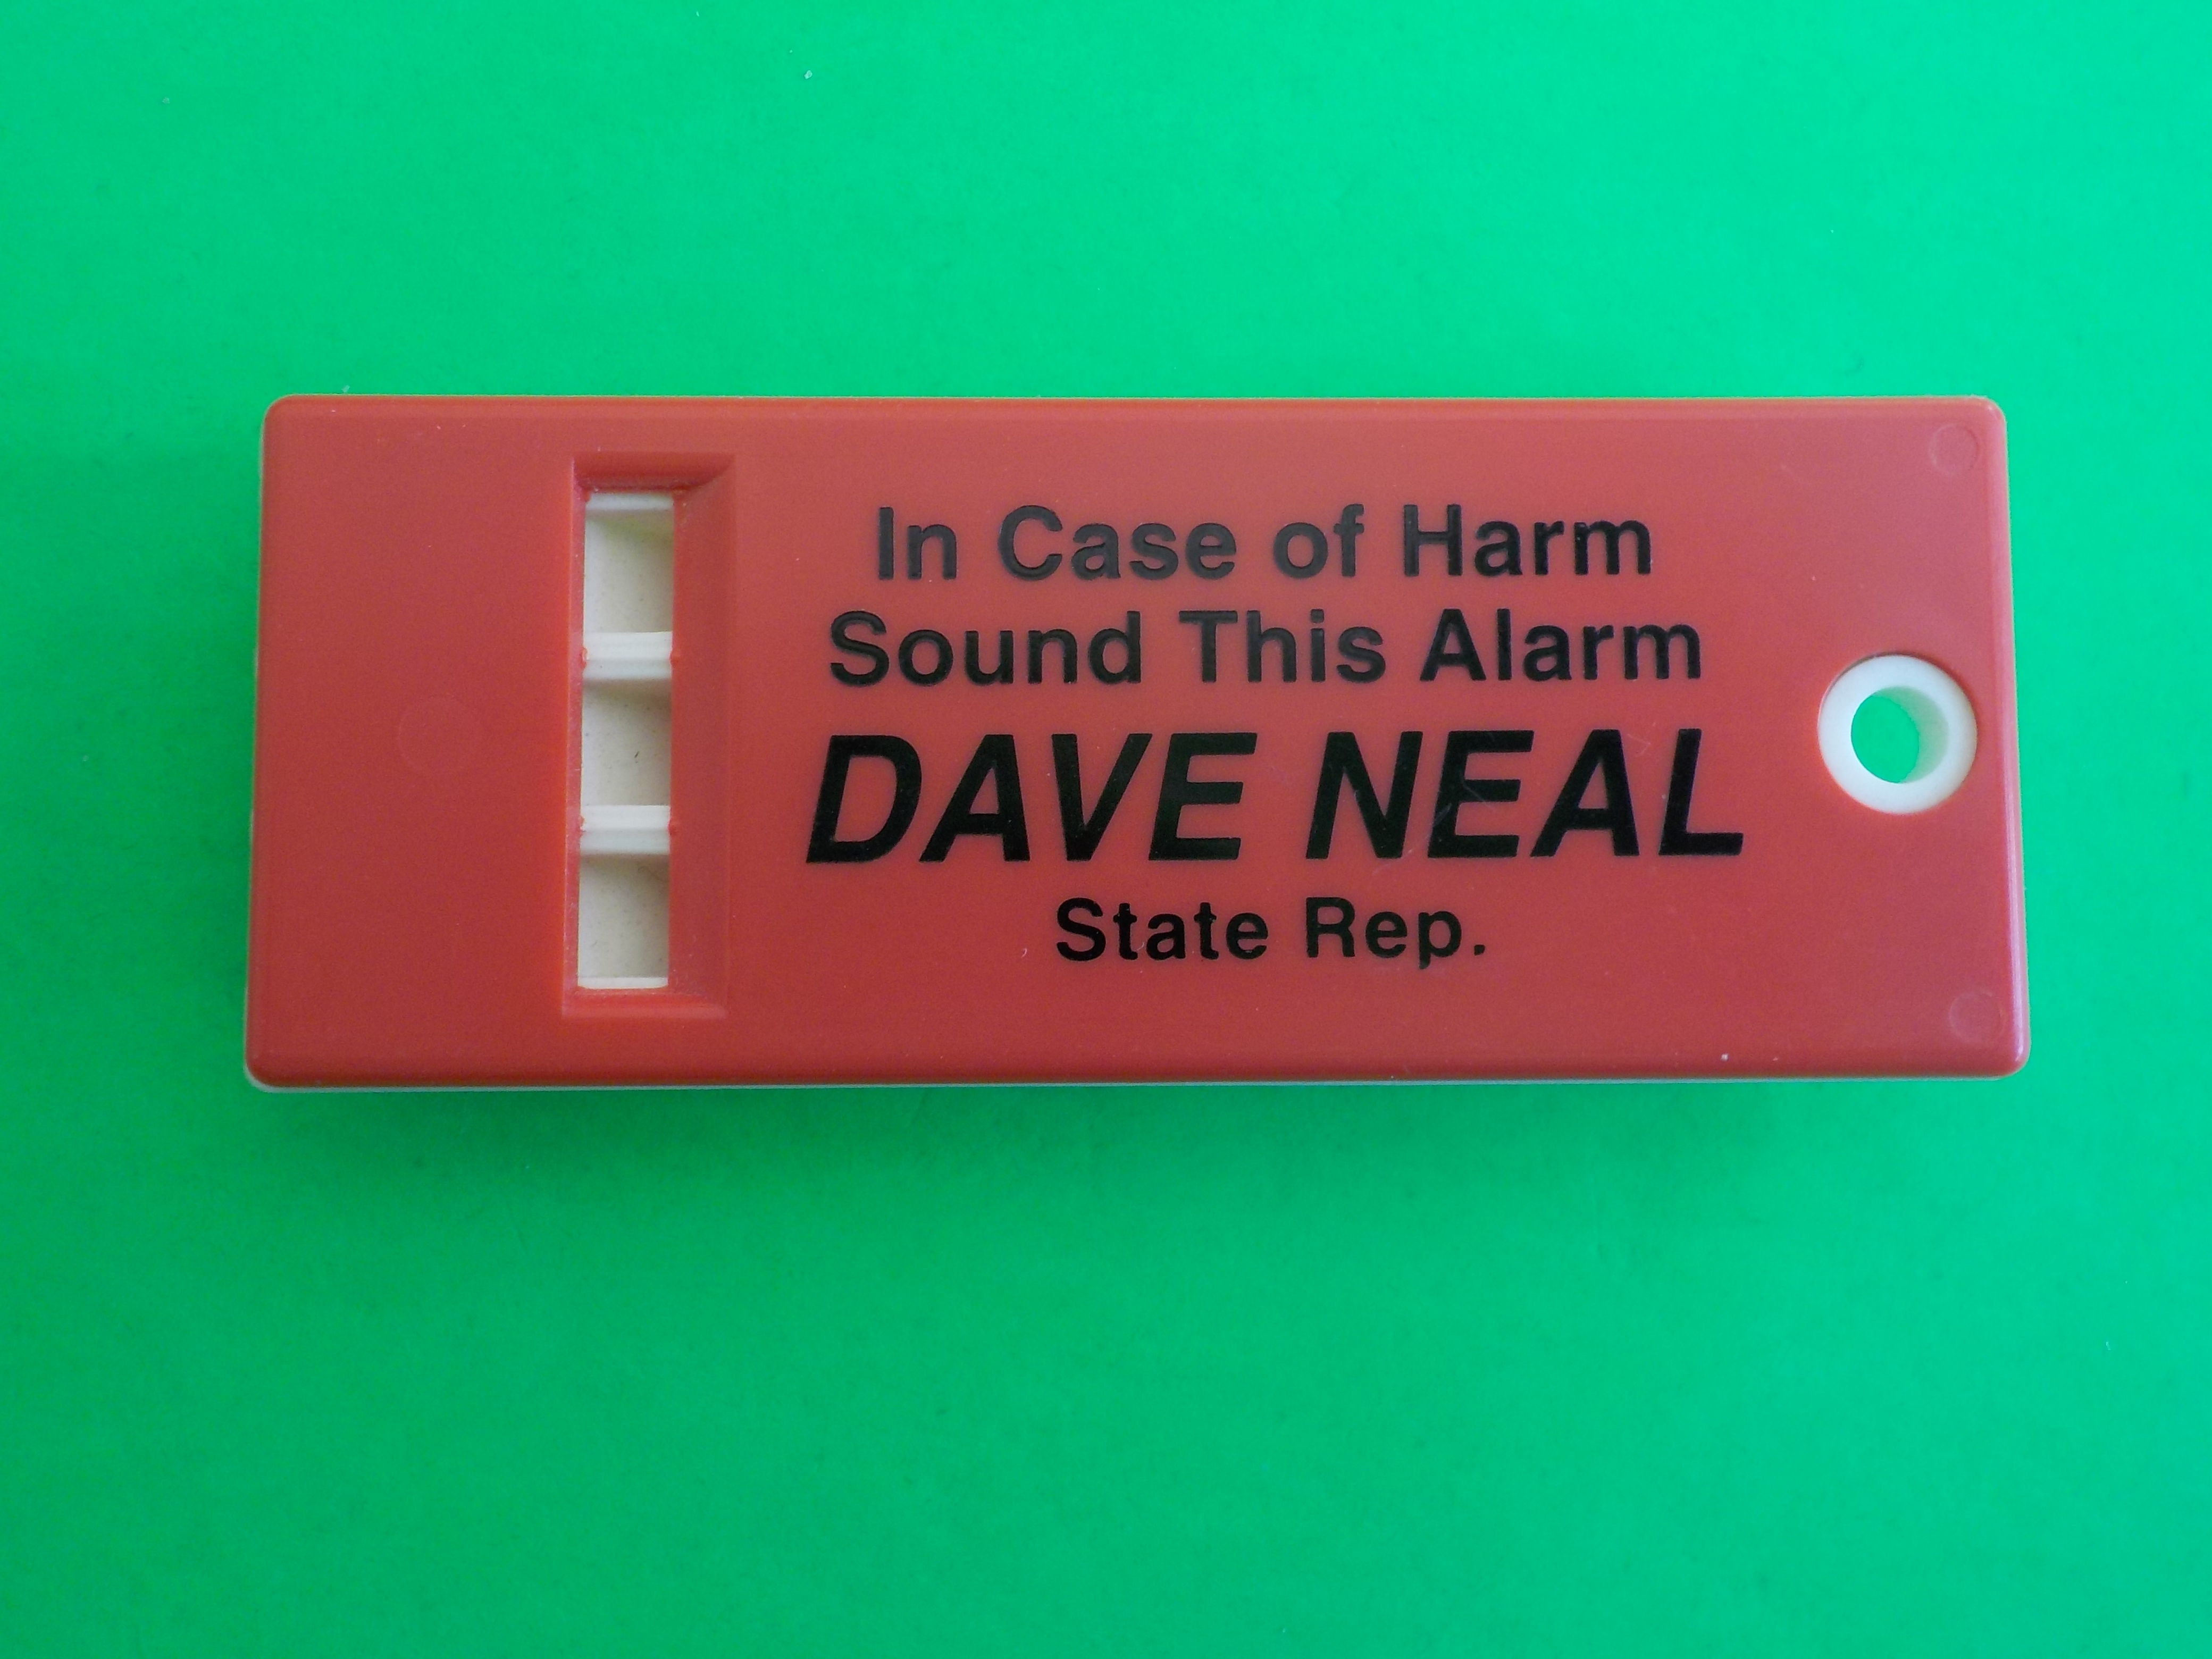 Dave Neal